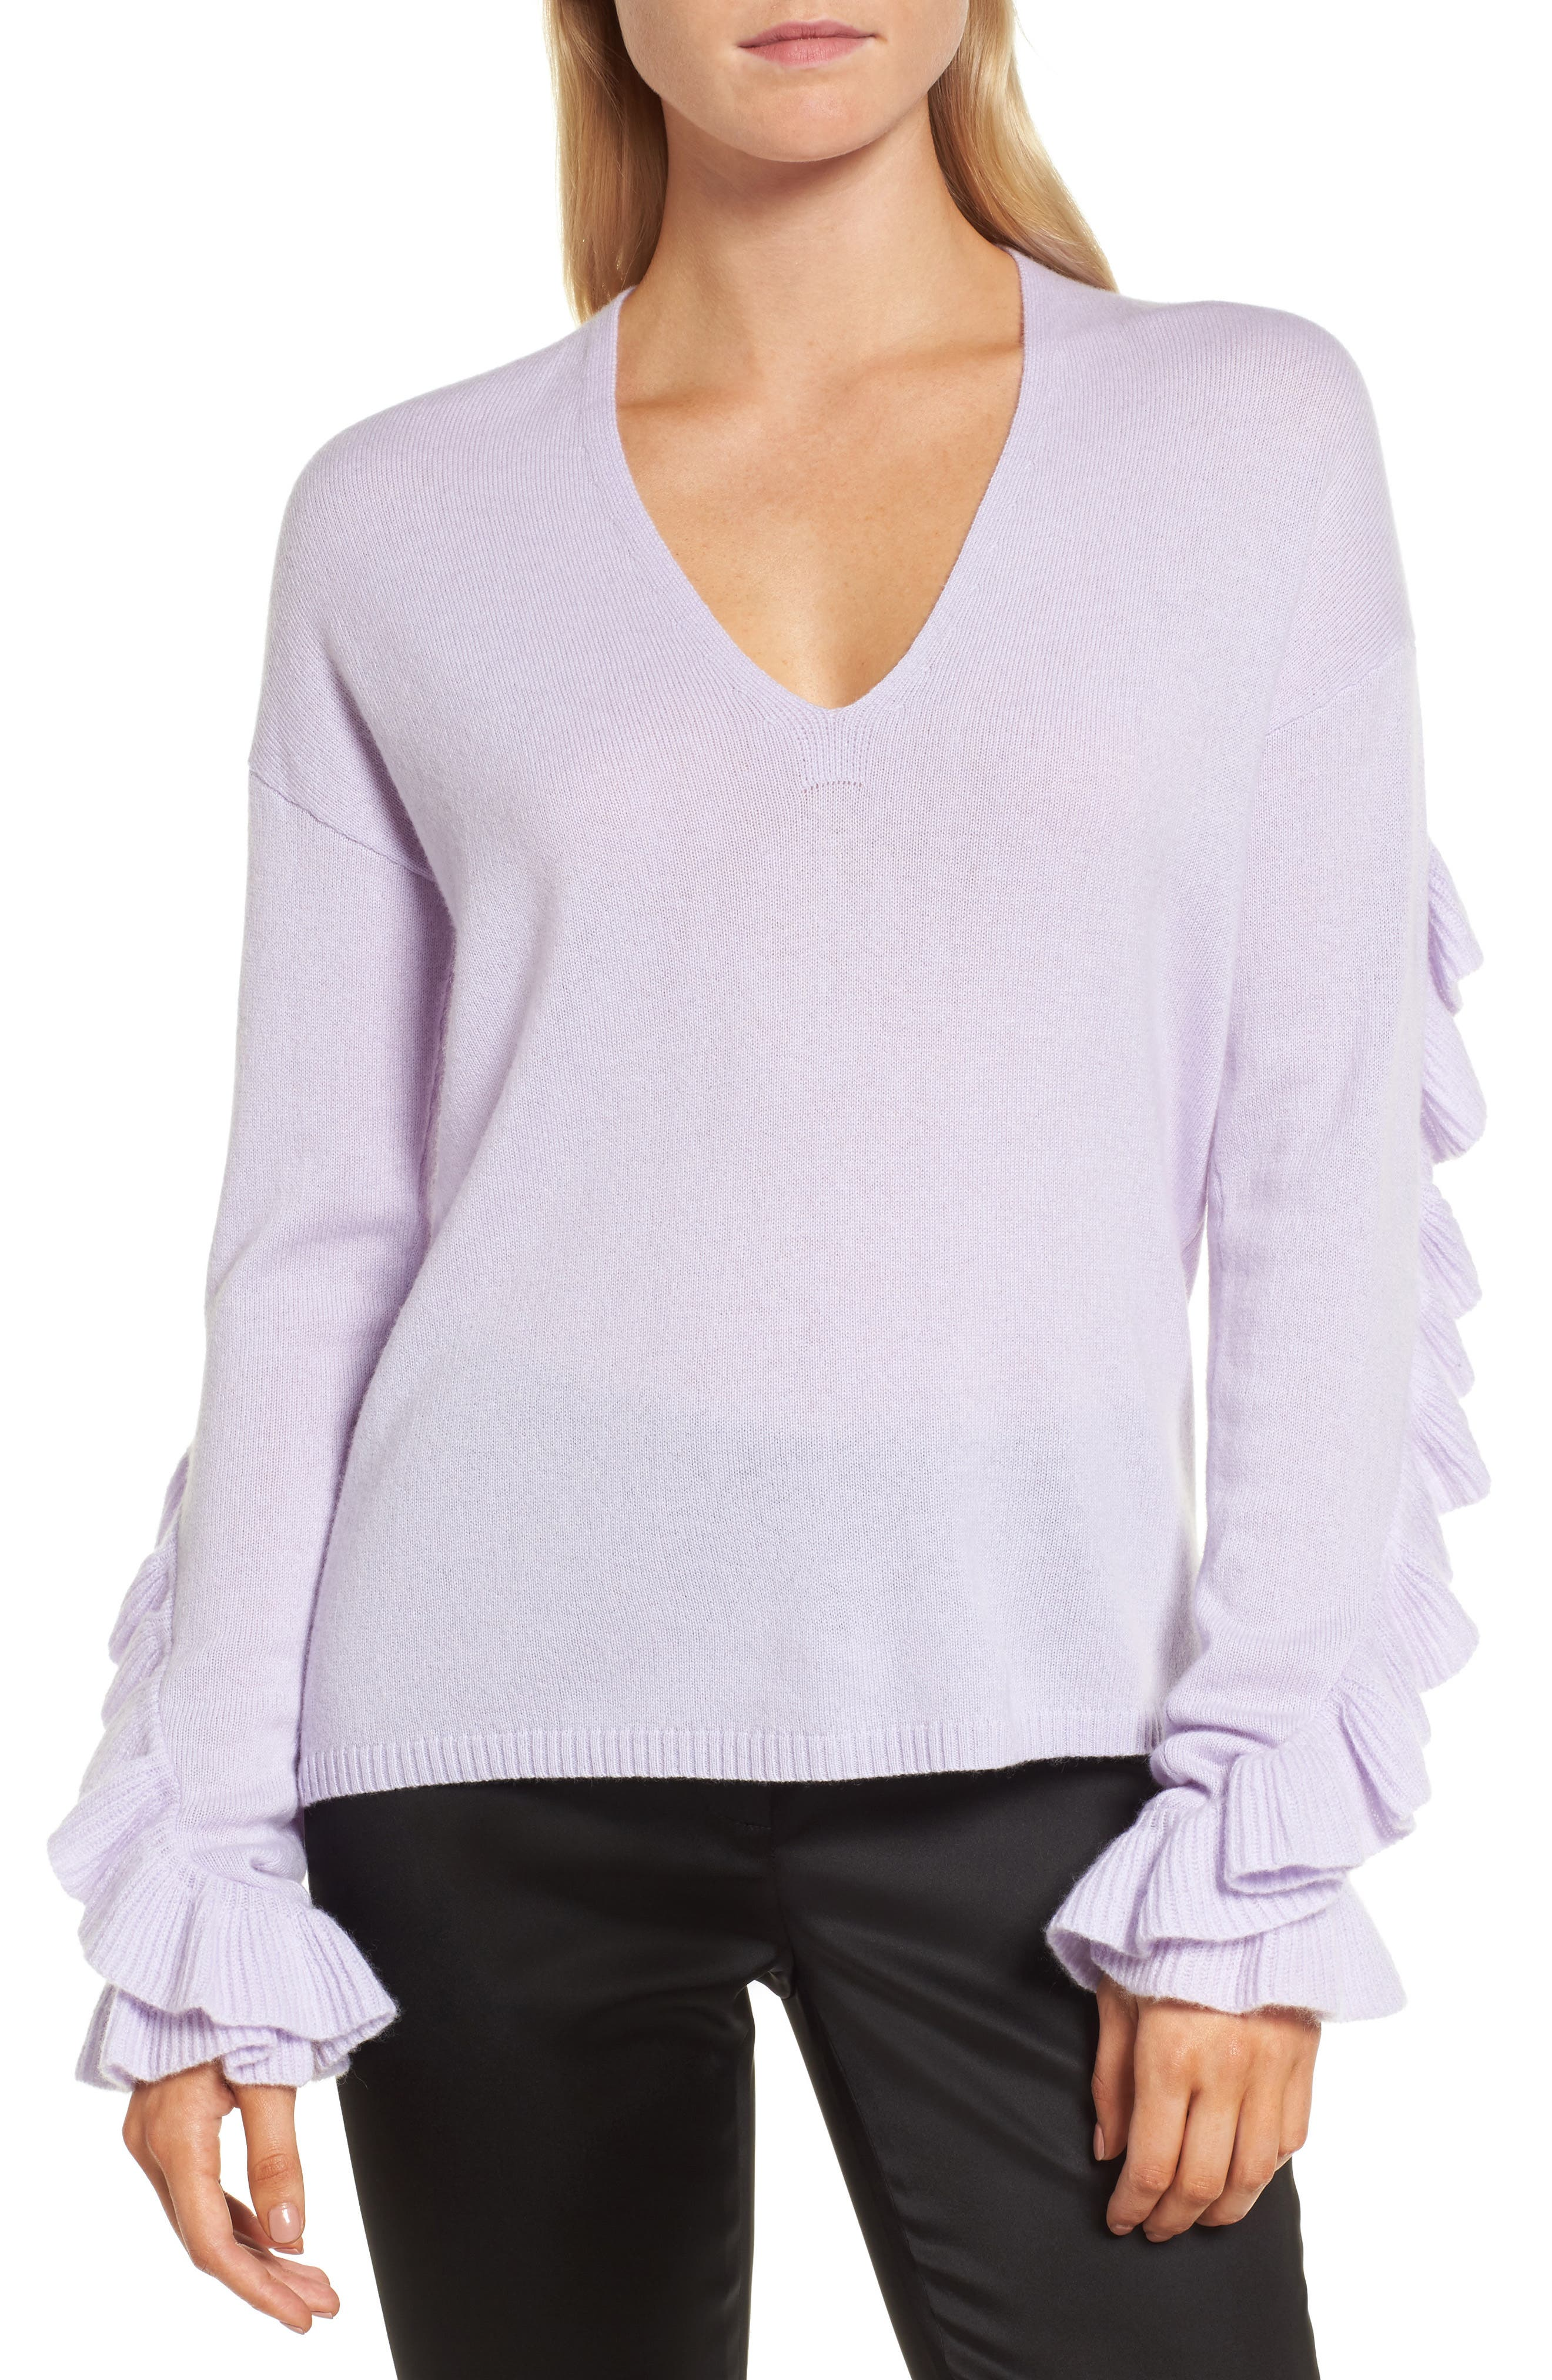 Alternate Image 1 Selected - Lewit Ruffle Sleeve Cashmere Sweater